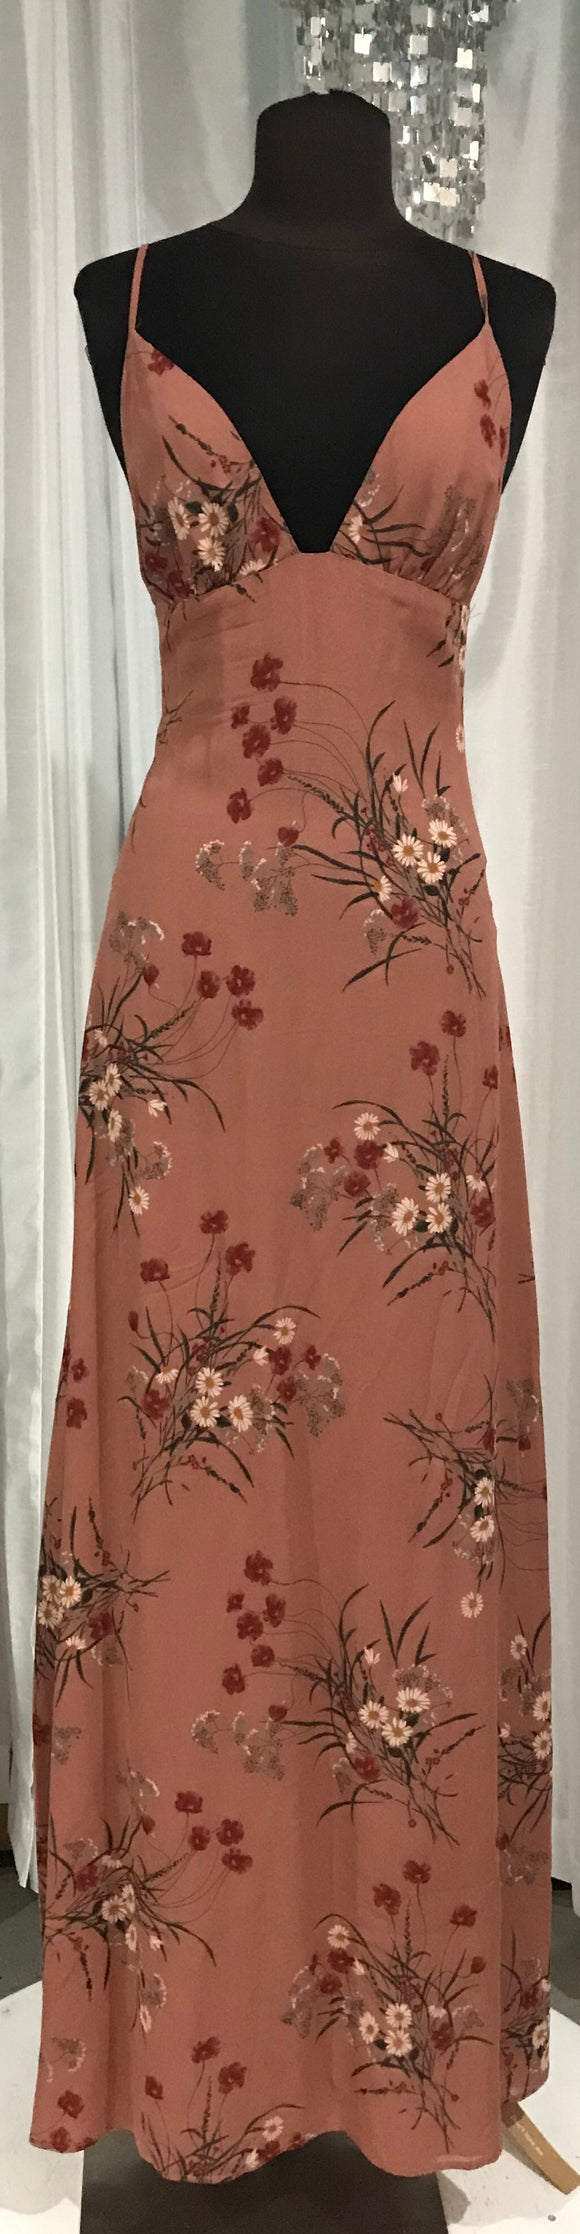 BOUTIQUE Rust Maxi Dress With Floral Design Size 4